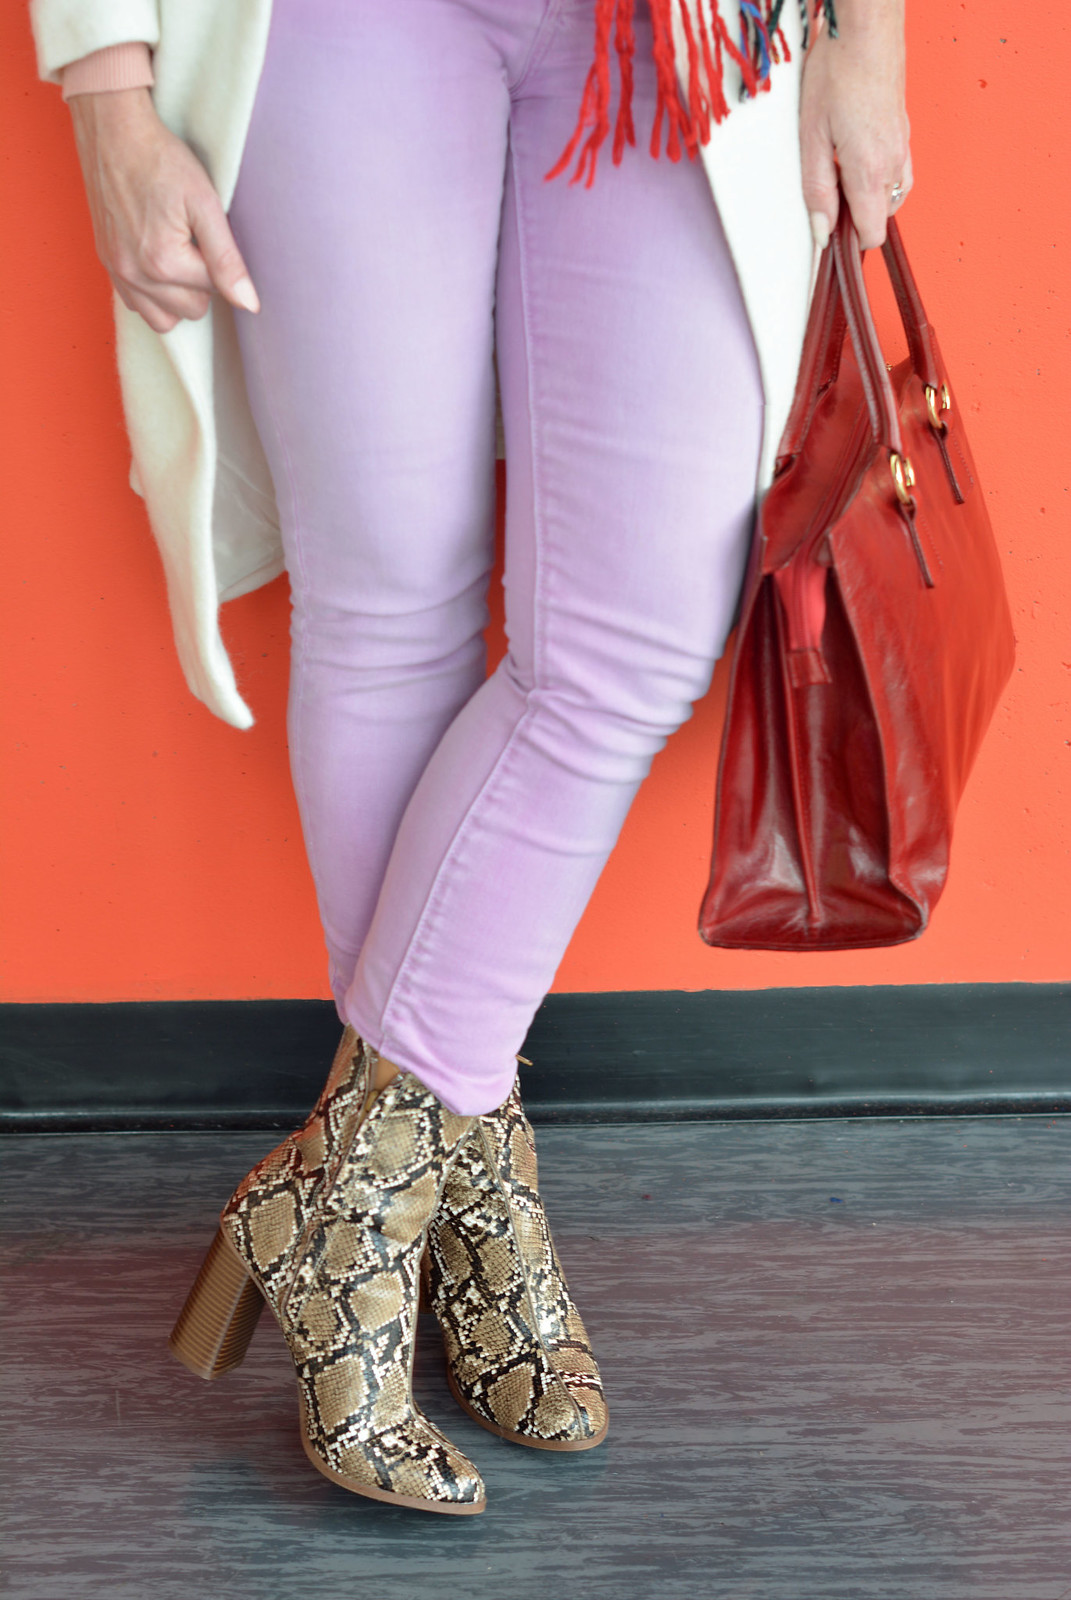 Winter brights of red, lilac and white with snakeskin boots| Not Dressed As Lamb